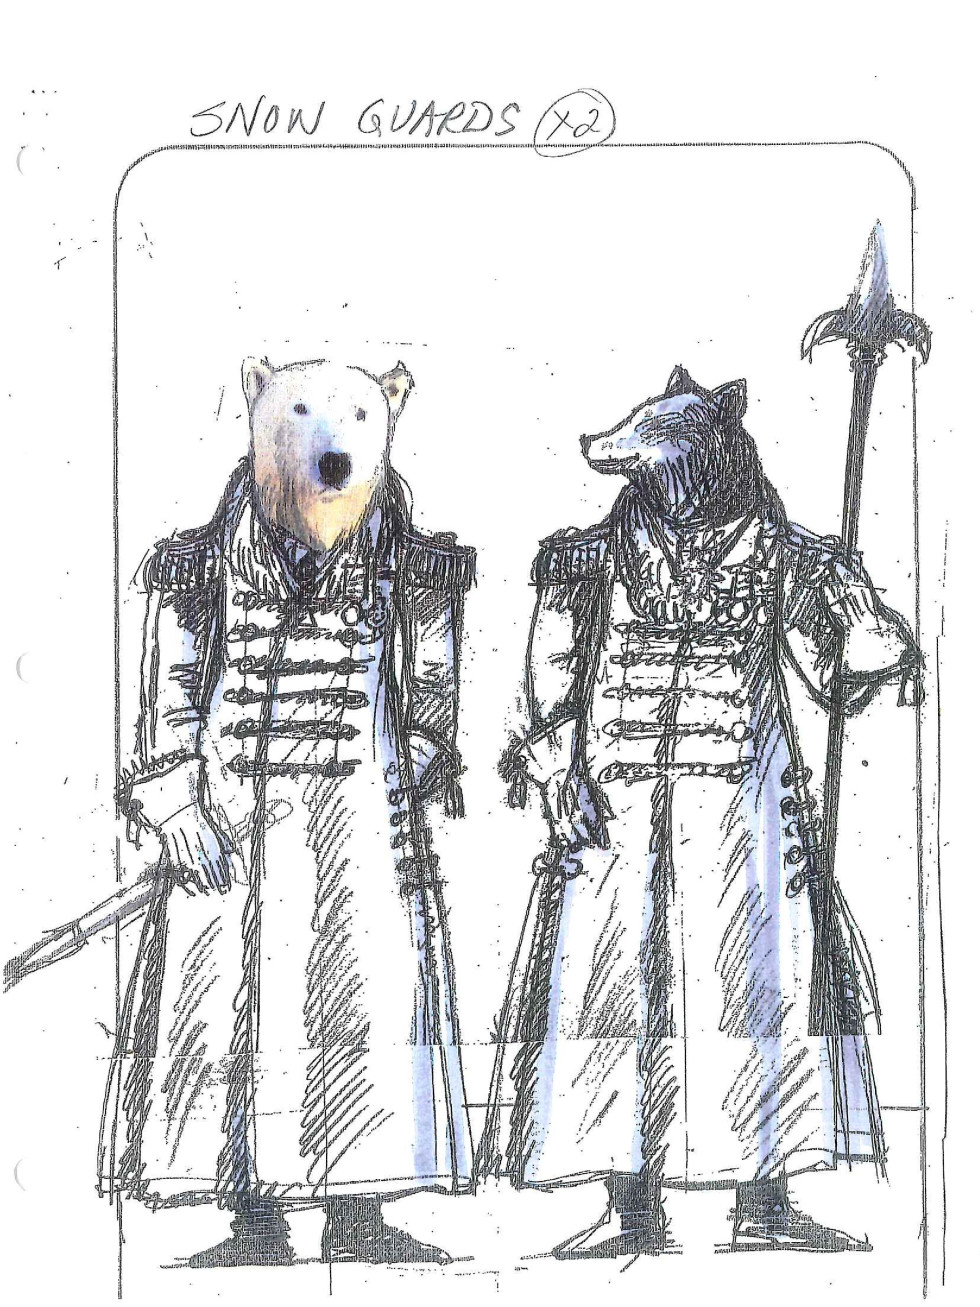 Houston Ballet new Nutcracker drawing of Snow Guards